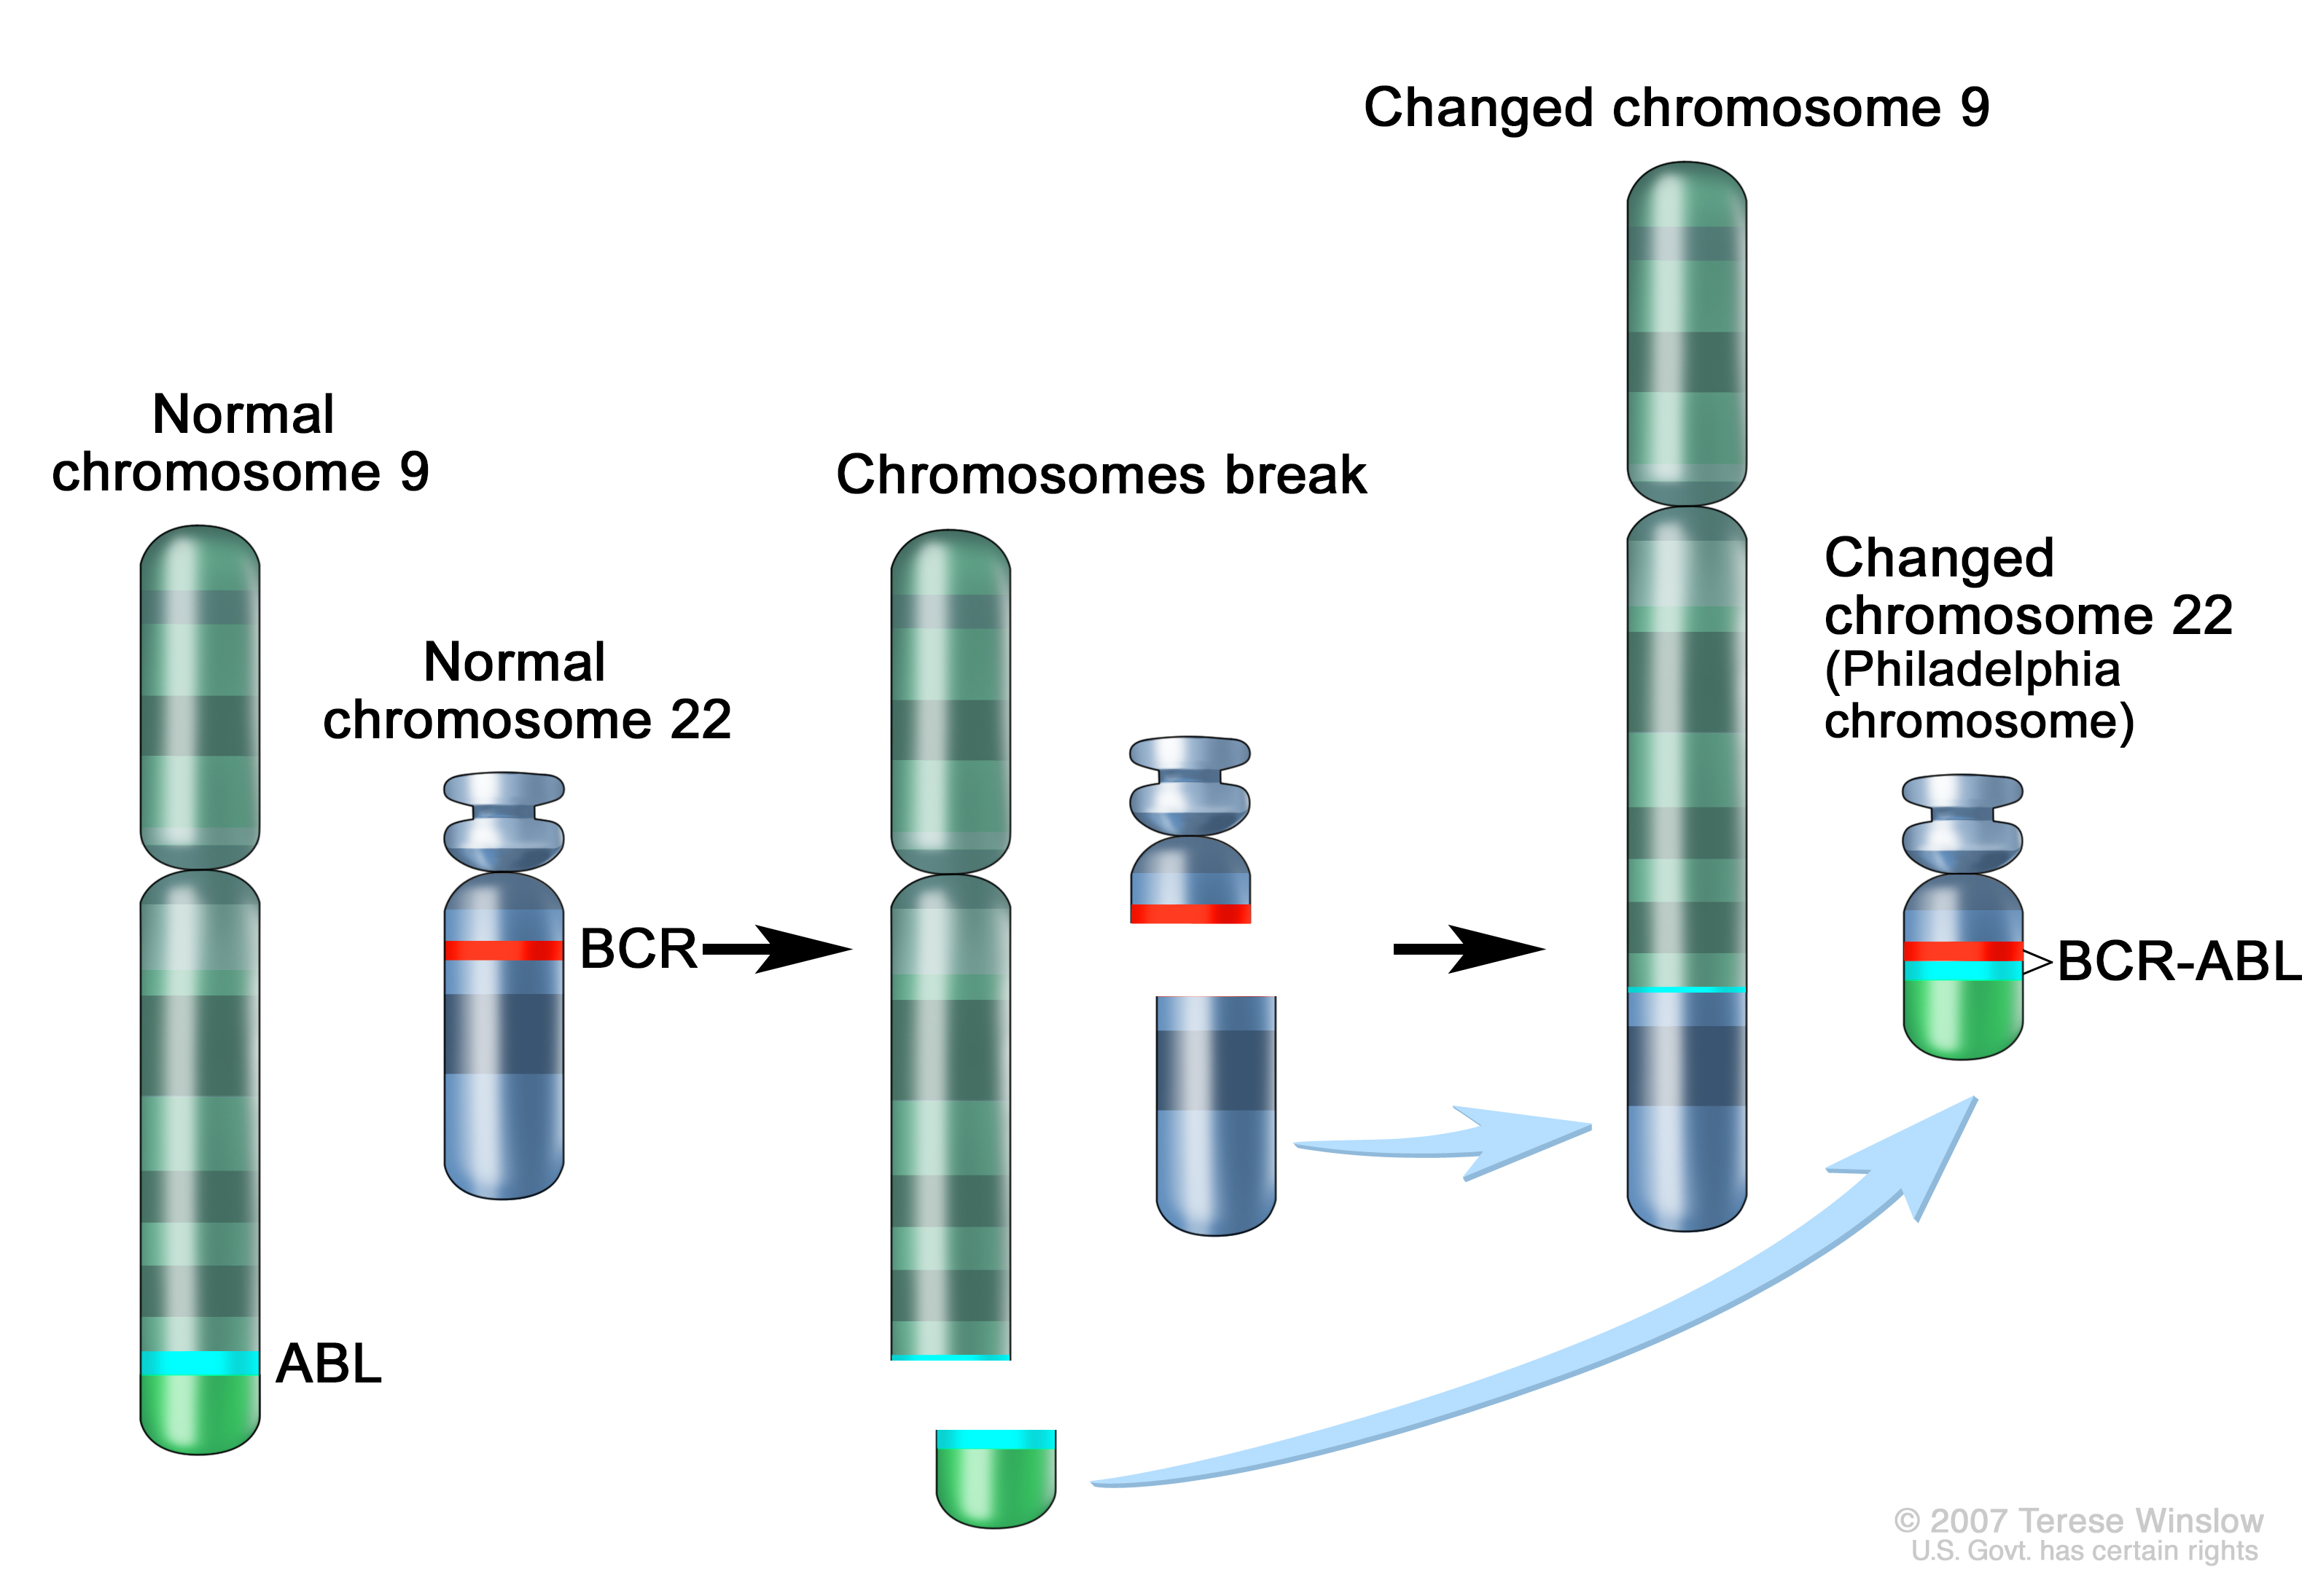 Philadelphia chromosome; three-panel drawing shows a piece of chromosome 9 and a piece of chromosome 22 breaking off and trading places, creating a changed chromosome 22 called the Philadelphia chromosome. In the left panel, the drawing shows a normal chromosome 9 with the ABL gene and a normal chromosome 22 with the BCR gene. In the center panel, the drawing shows chromosome 9 breaking apart in the ABL gene and chromosome 22 breaking apart below the BCR gene. In the right panel, the drawing shows chromosome 9 with the piece from chromosome 22 attached and chromosome 22 with the piece from chromosome 9 containing part of the ABL gene attached. The changed chromosome 22 with the BCR-ABL gene is called the Philadelphia chromosome.